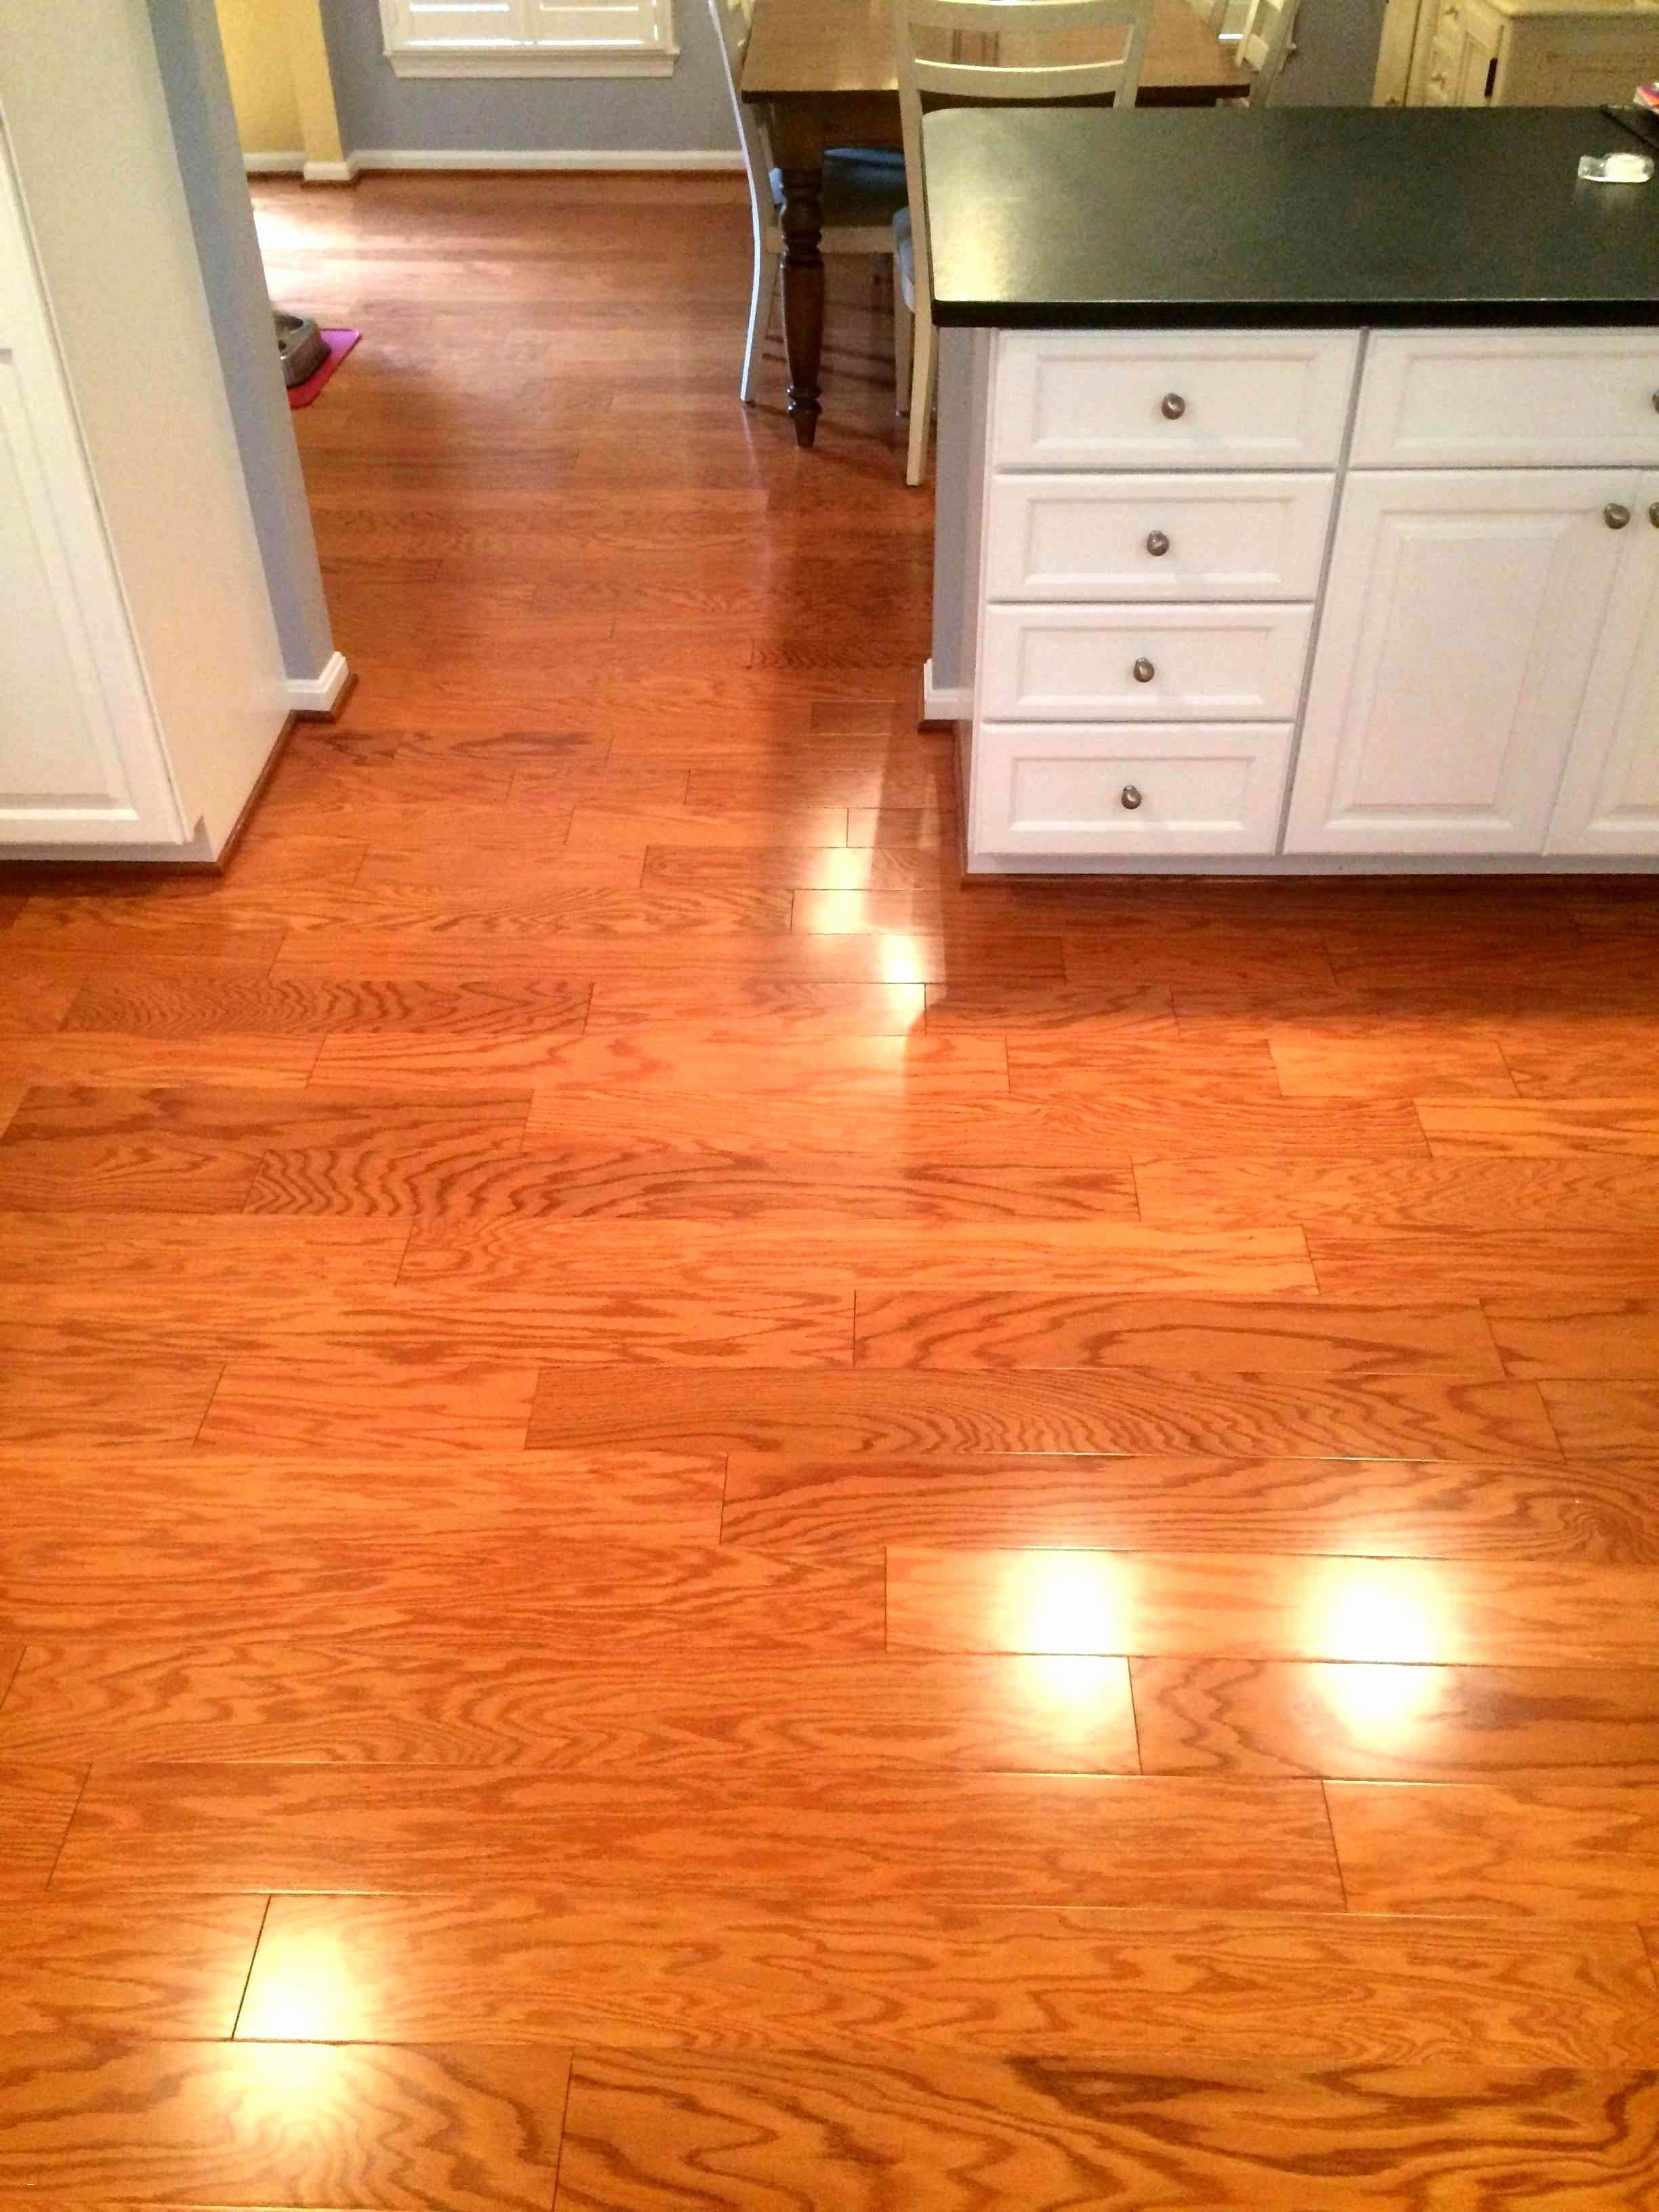 Ss Hardwood Floors Of 18 Inspirational Hardwood Flooring Stock Dizpos Com Intended for Hardwood Flooring Best Of 50 Inspirational Vinyl Plank Flooring Pics 50 S Pictures Of 18 Inspirational